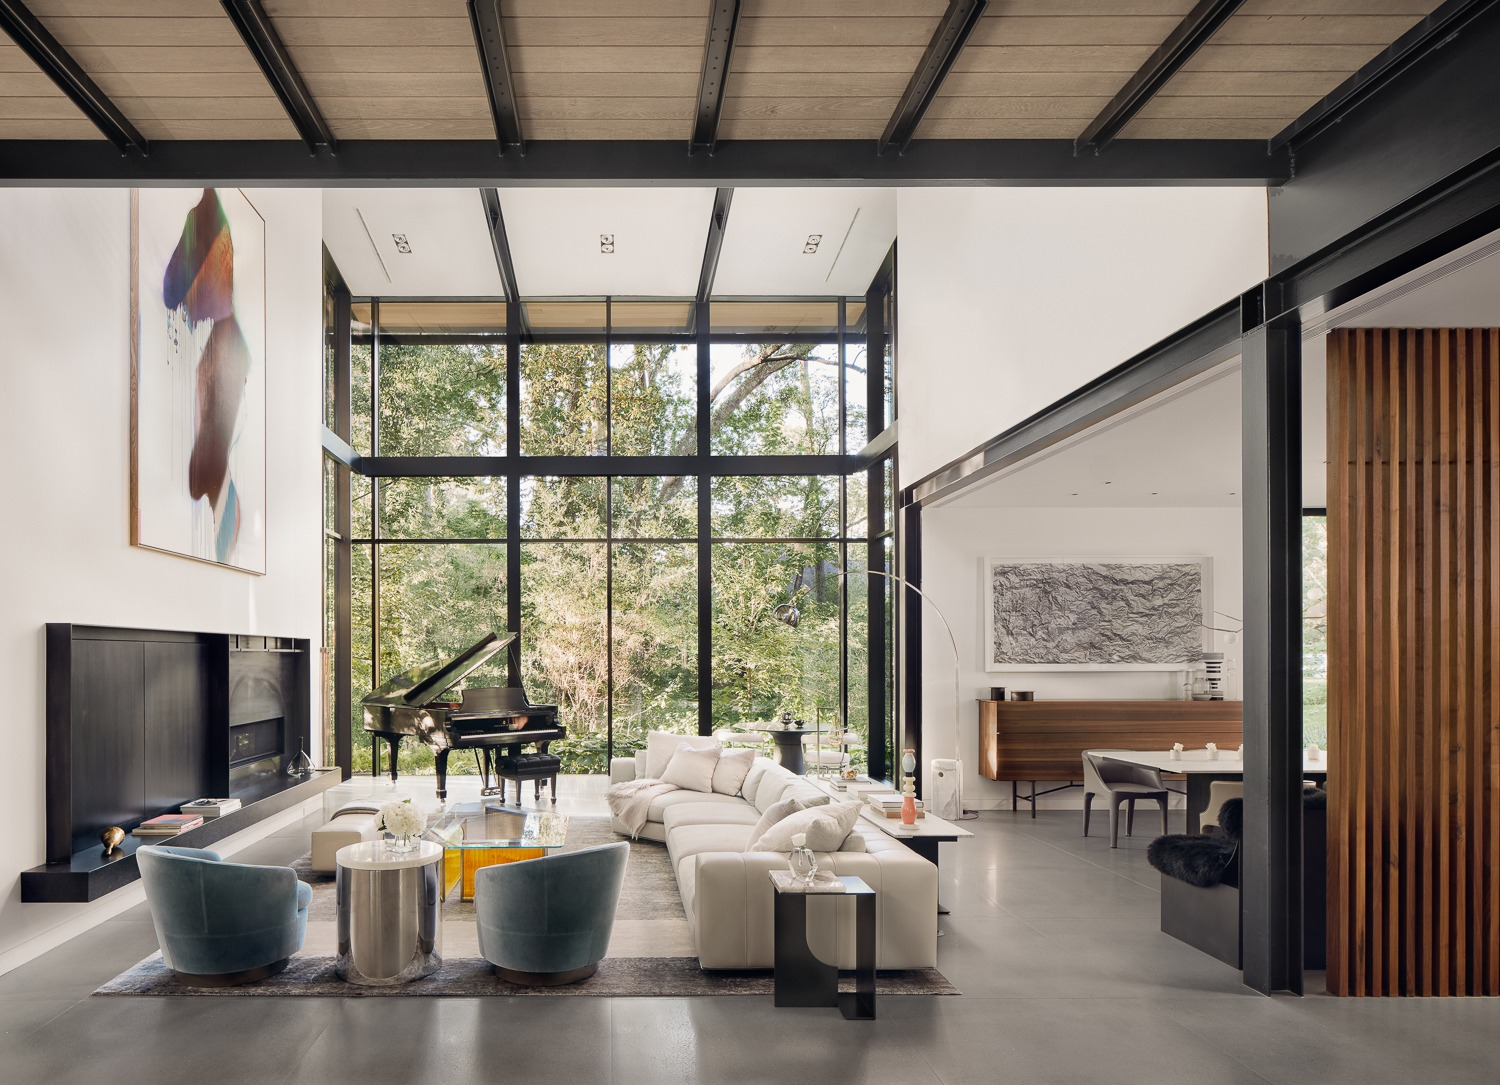 top 20 interior designers/architects from houston - a look at bathroom designs Top 20 Interior Designers/Architects from Houston – A Look at Bathroom Designs rotten